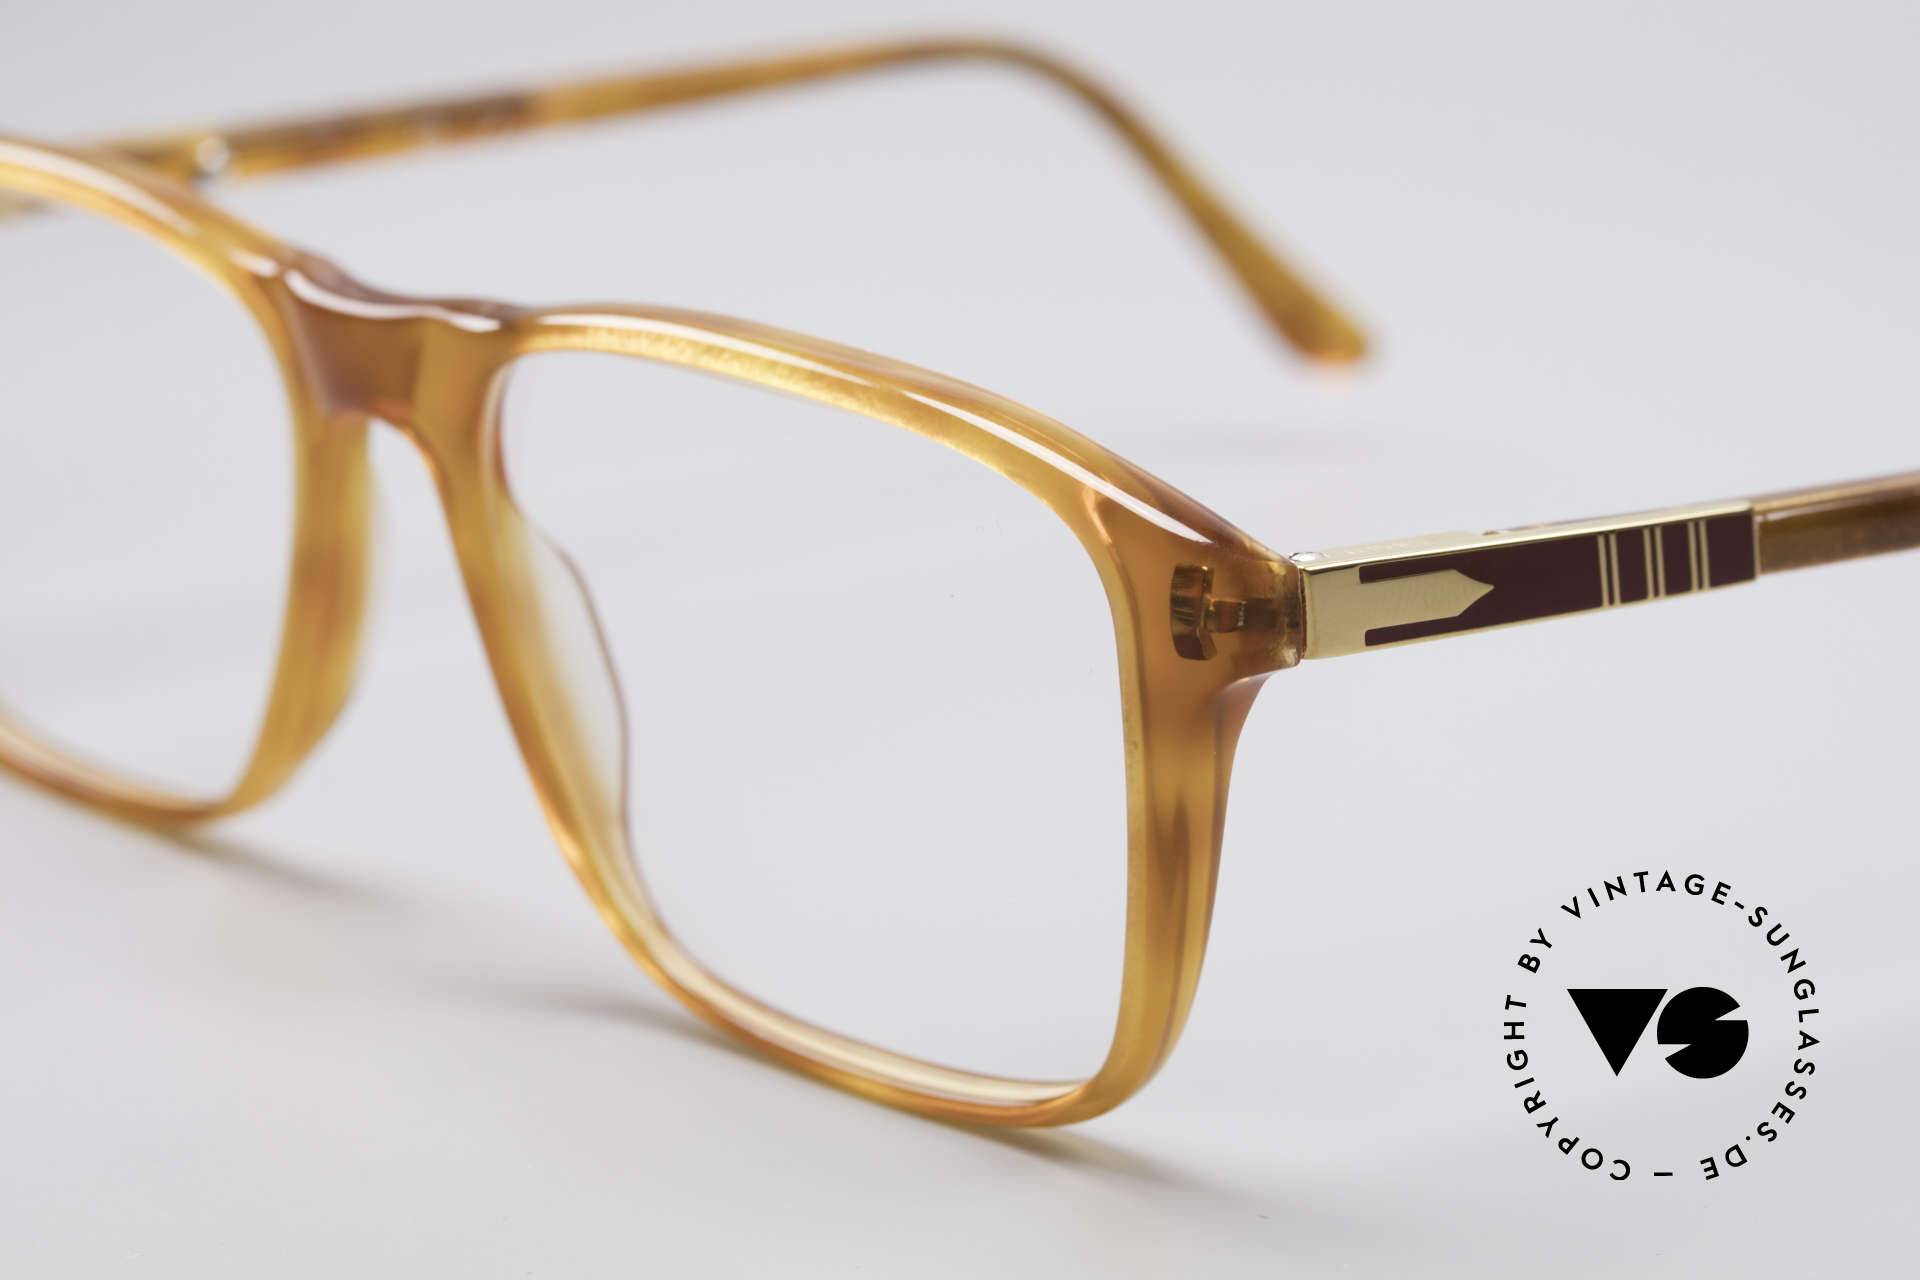 Persol Manager 13 Ratti Gold Plated 80's Frame, new old stock (from 1983) in an unworn condition!, Made for Men